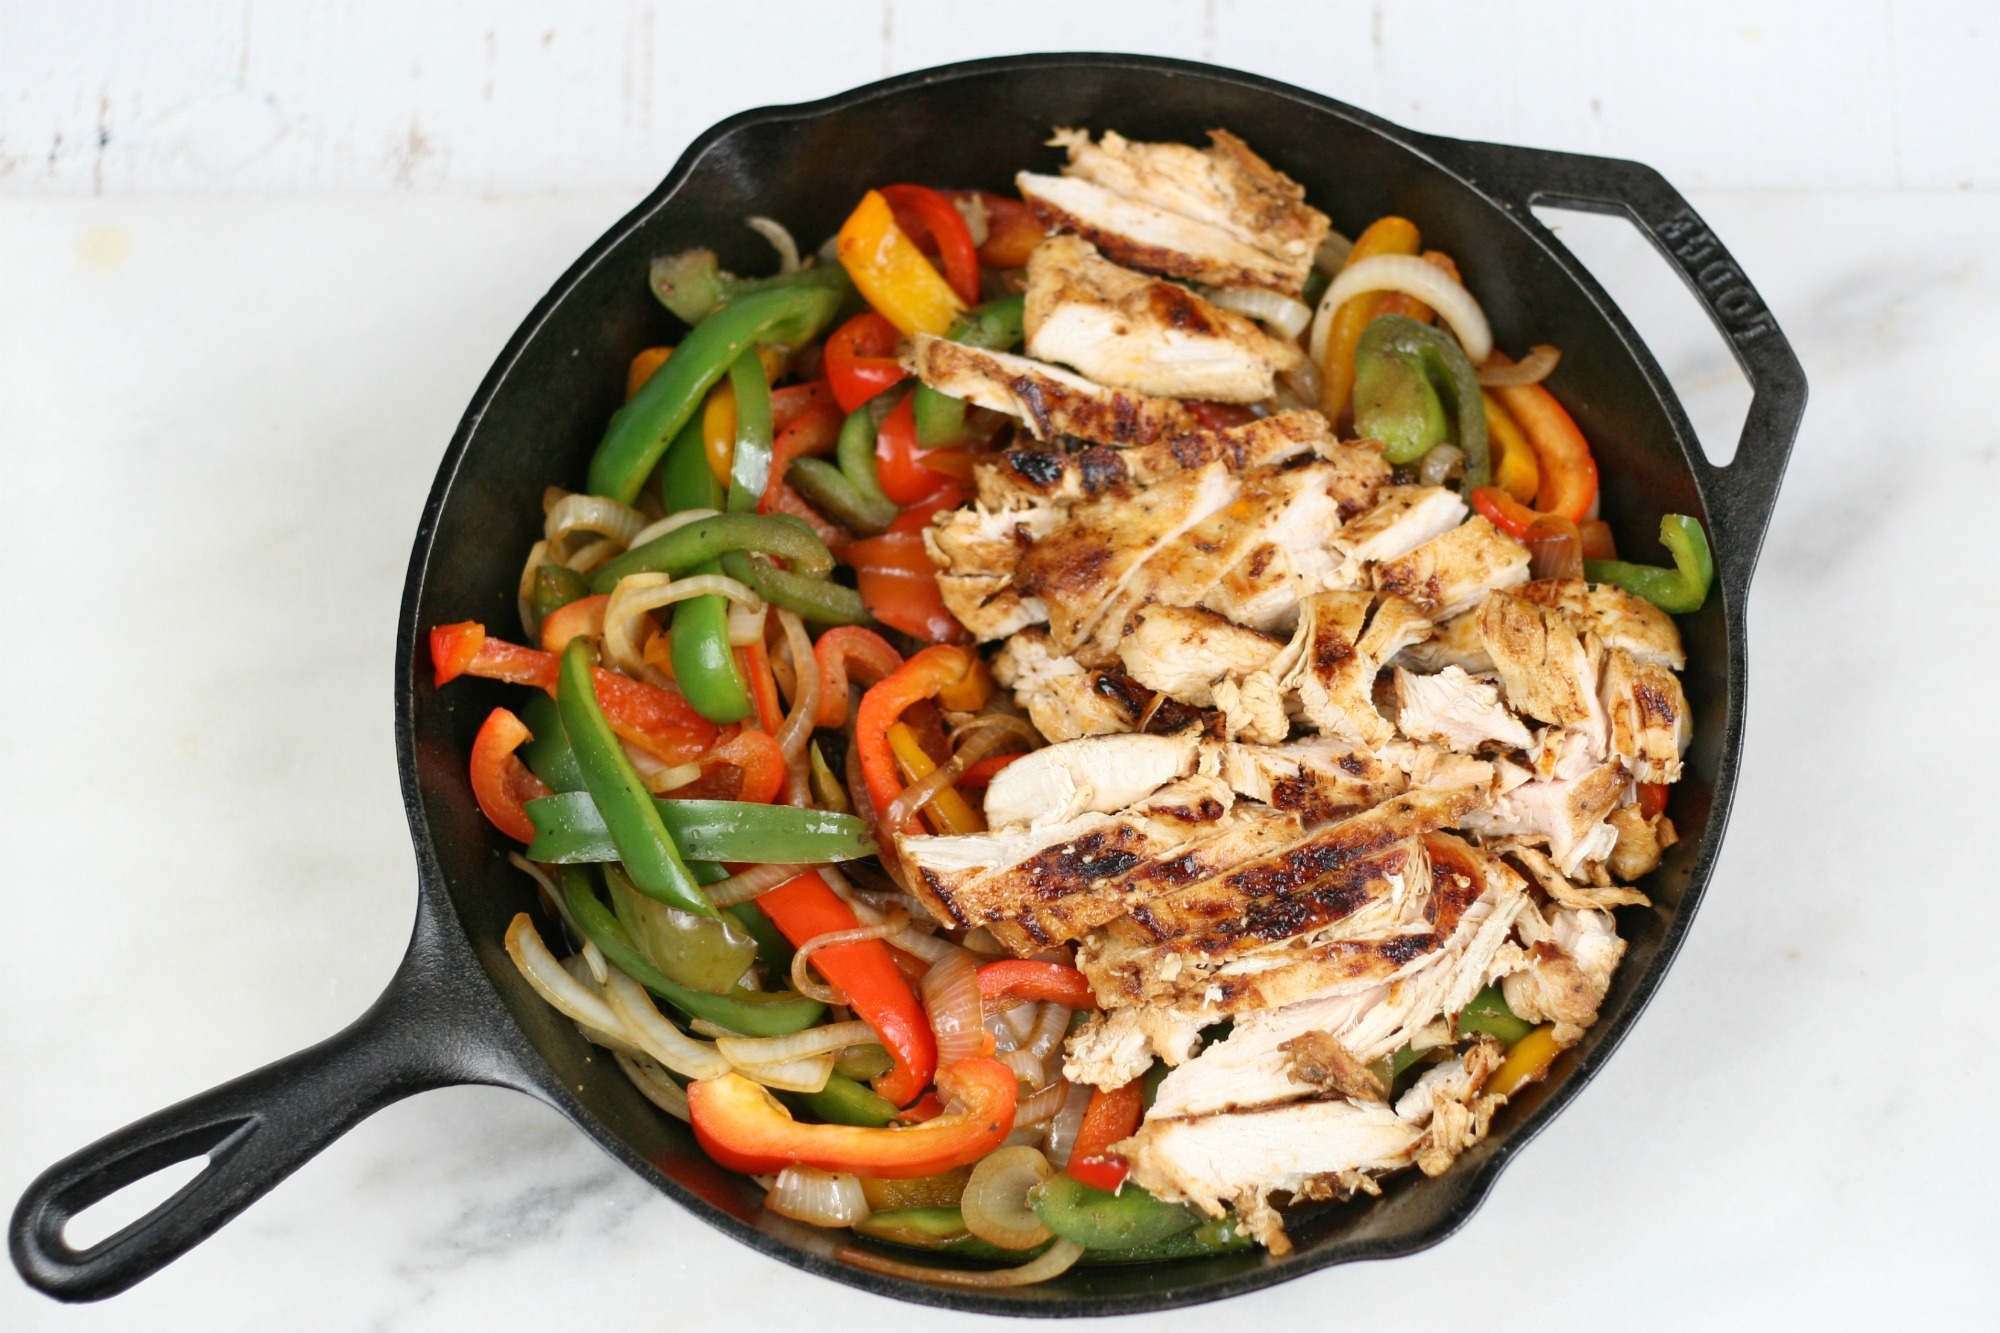 grilled chicken and sautéed onions and multi colored bell peppers in a cast iron skillet.